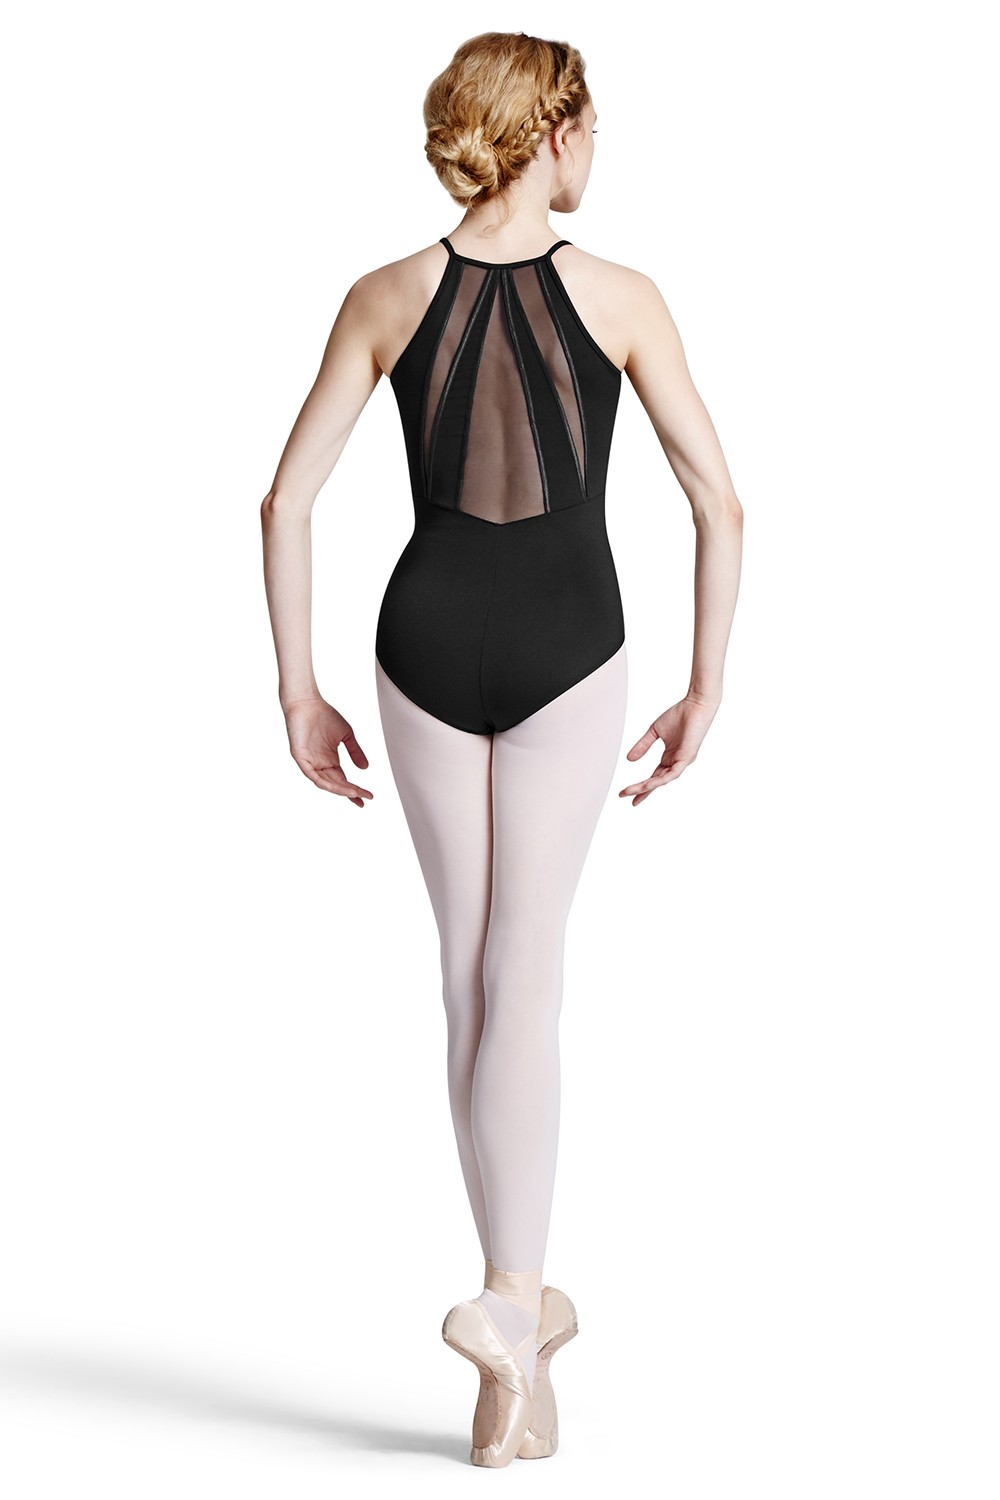 Jubilee Womens Camisole Leotards